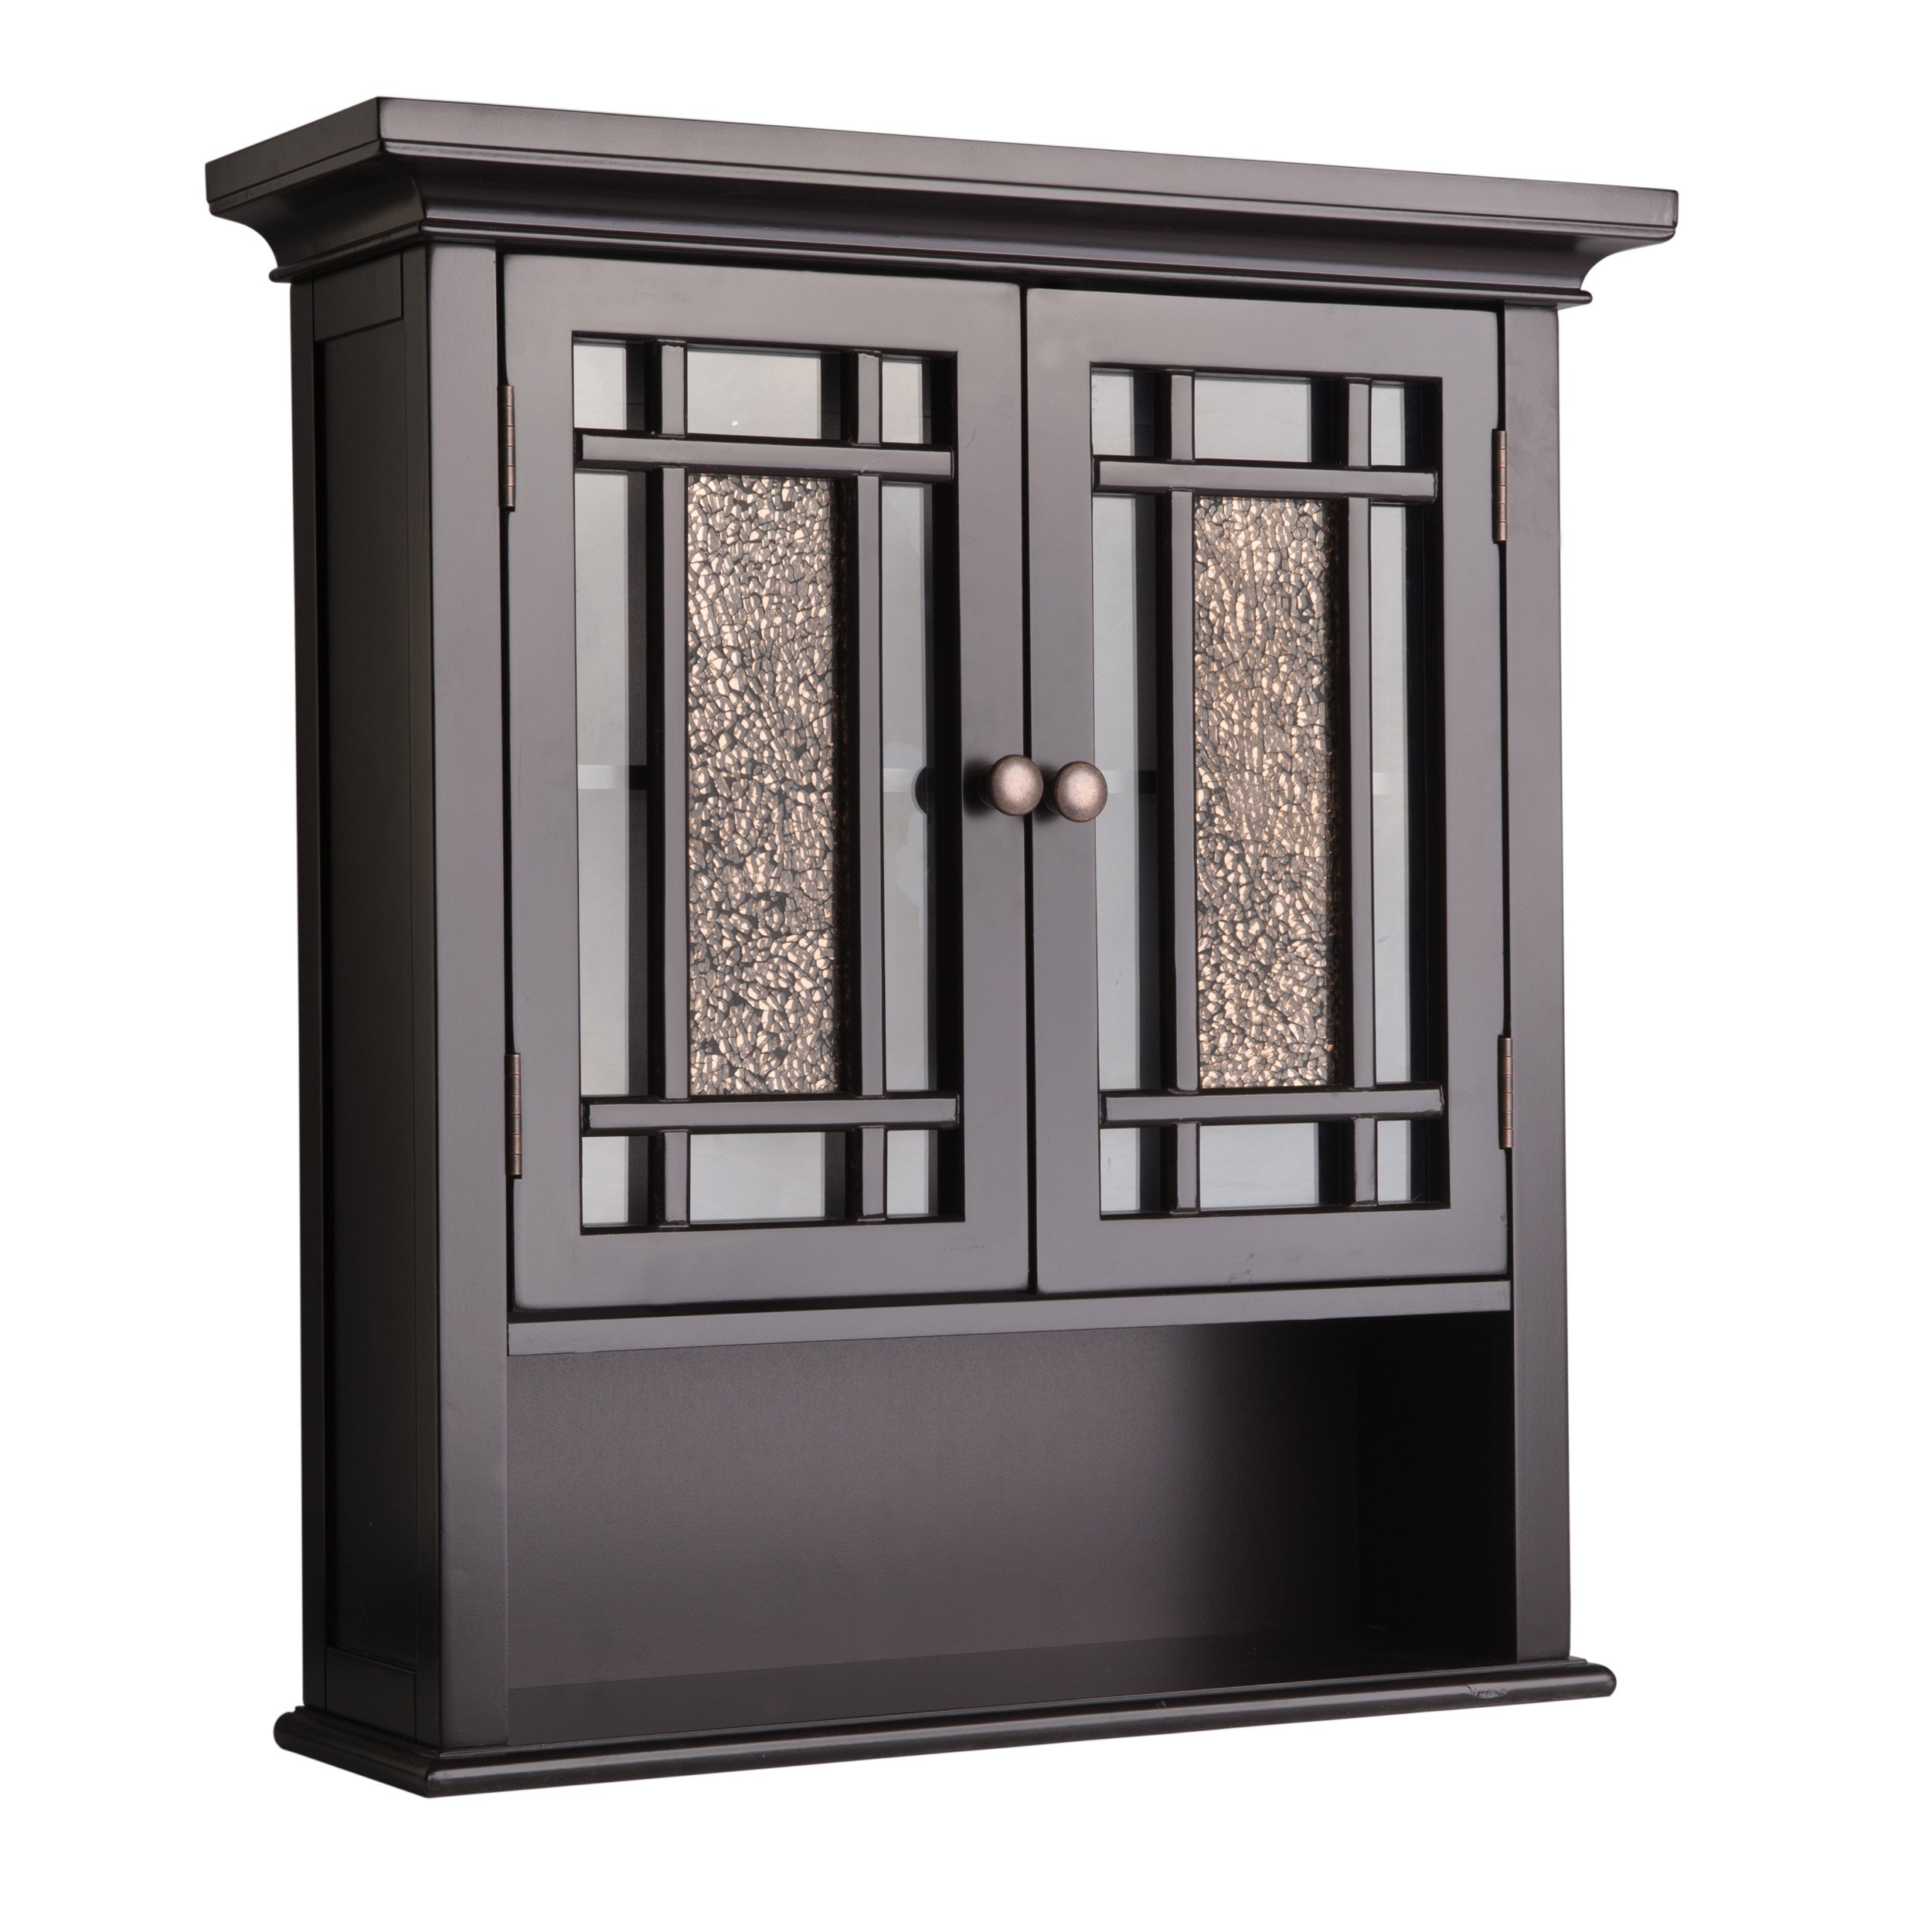 Elegant Home Fashions Whitney Wall Cabinet with 2 Doors and 1 Shelf by Elegant Home Fashions